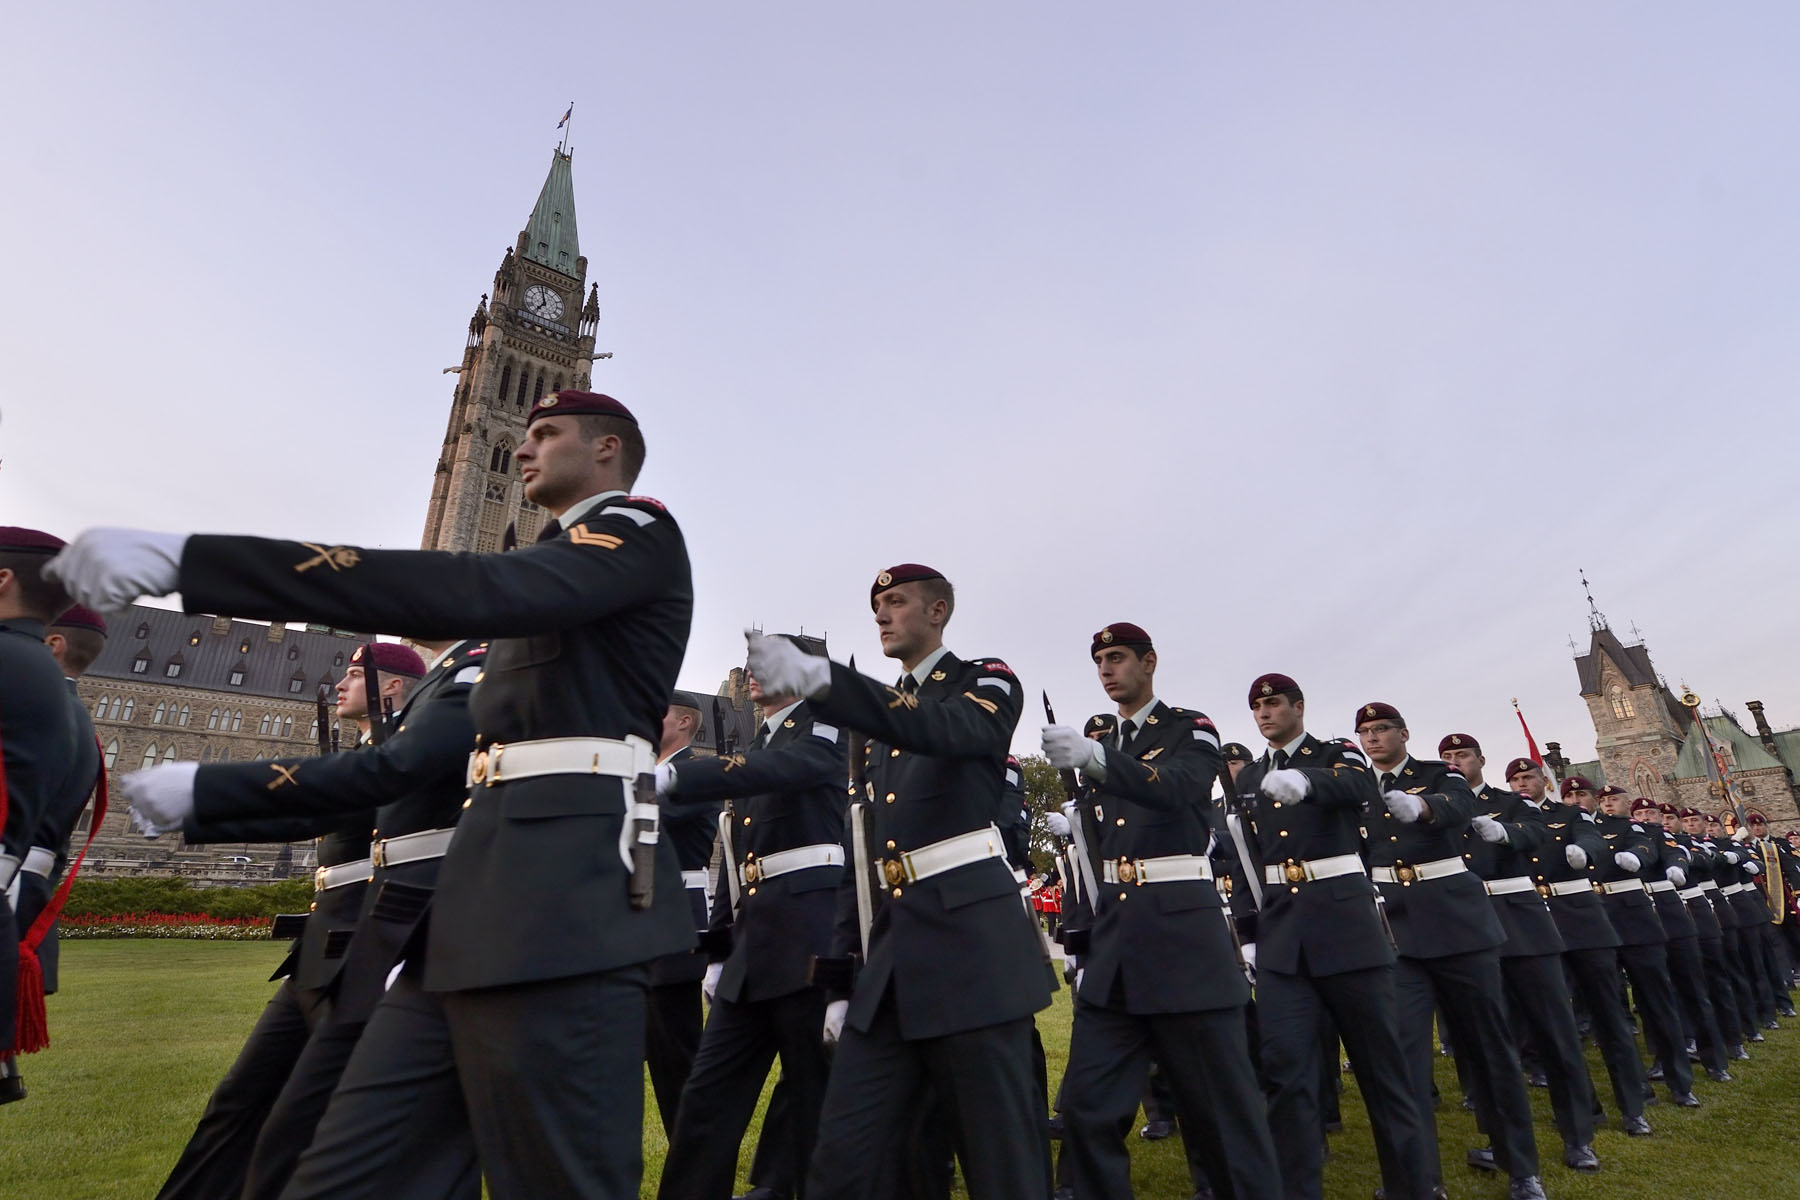 Close to 200 soldiers from the PPCLI and the R22eR performed a military parade.